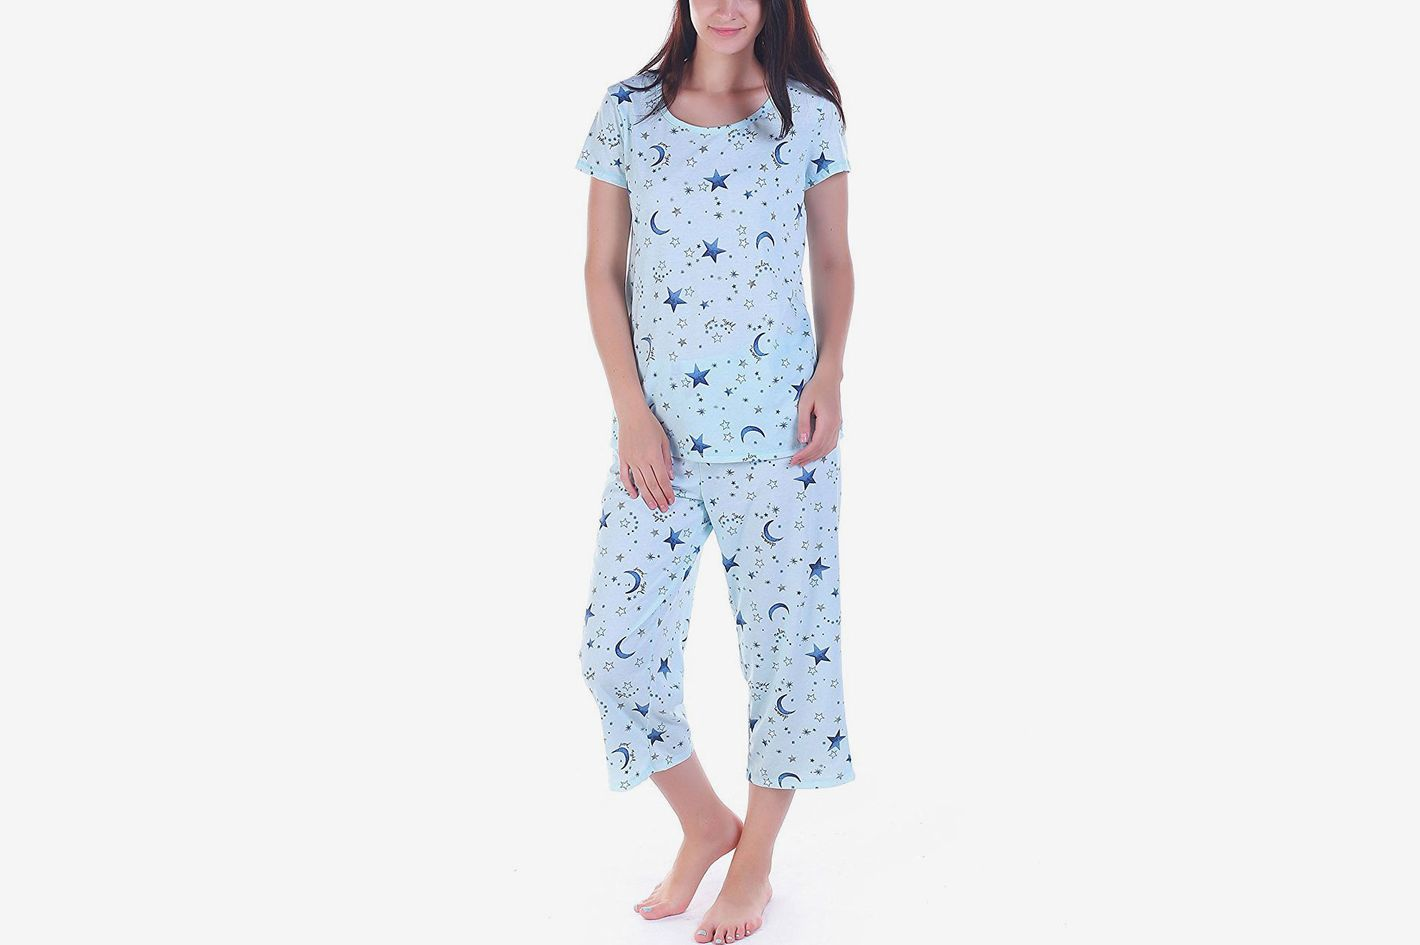 Best capri pajama set. Amoy madrola Women Cotton Sleepwear 1490e202e